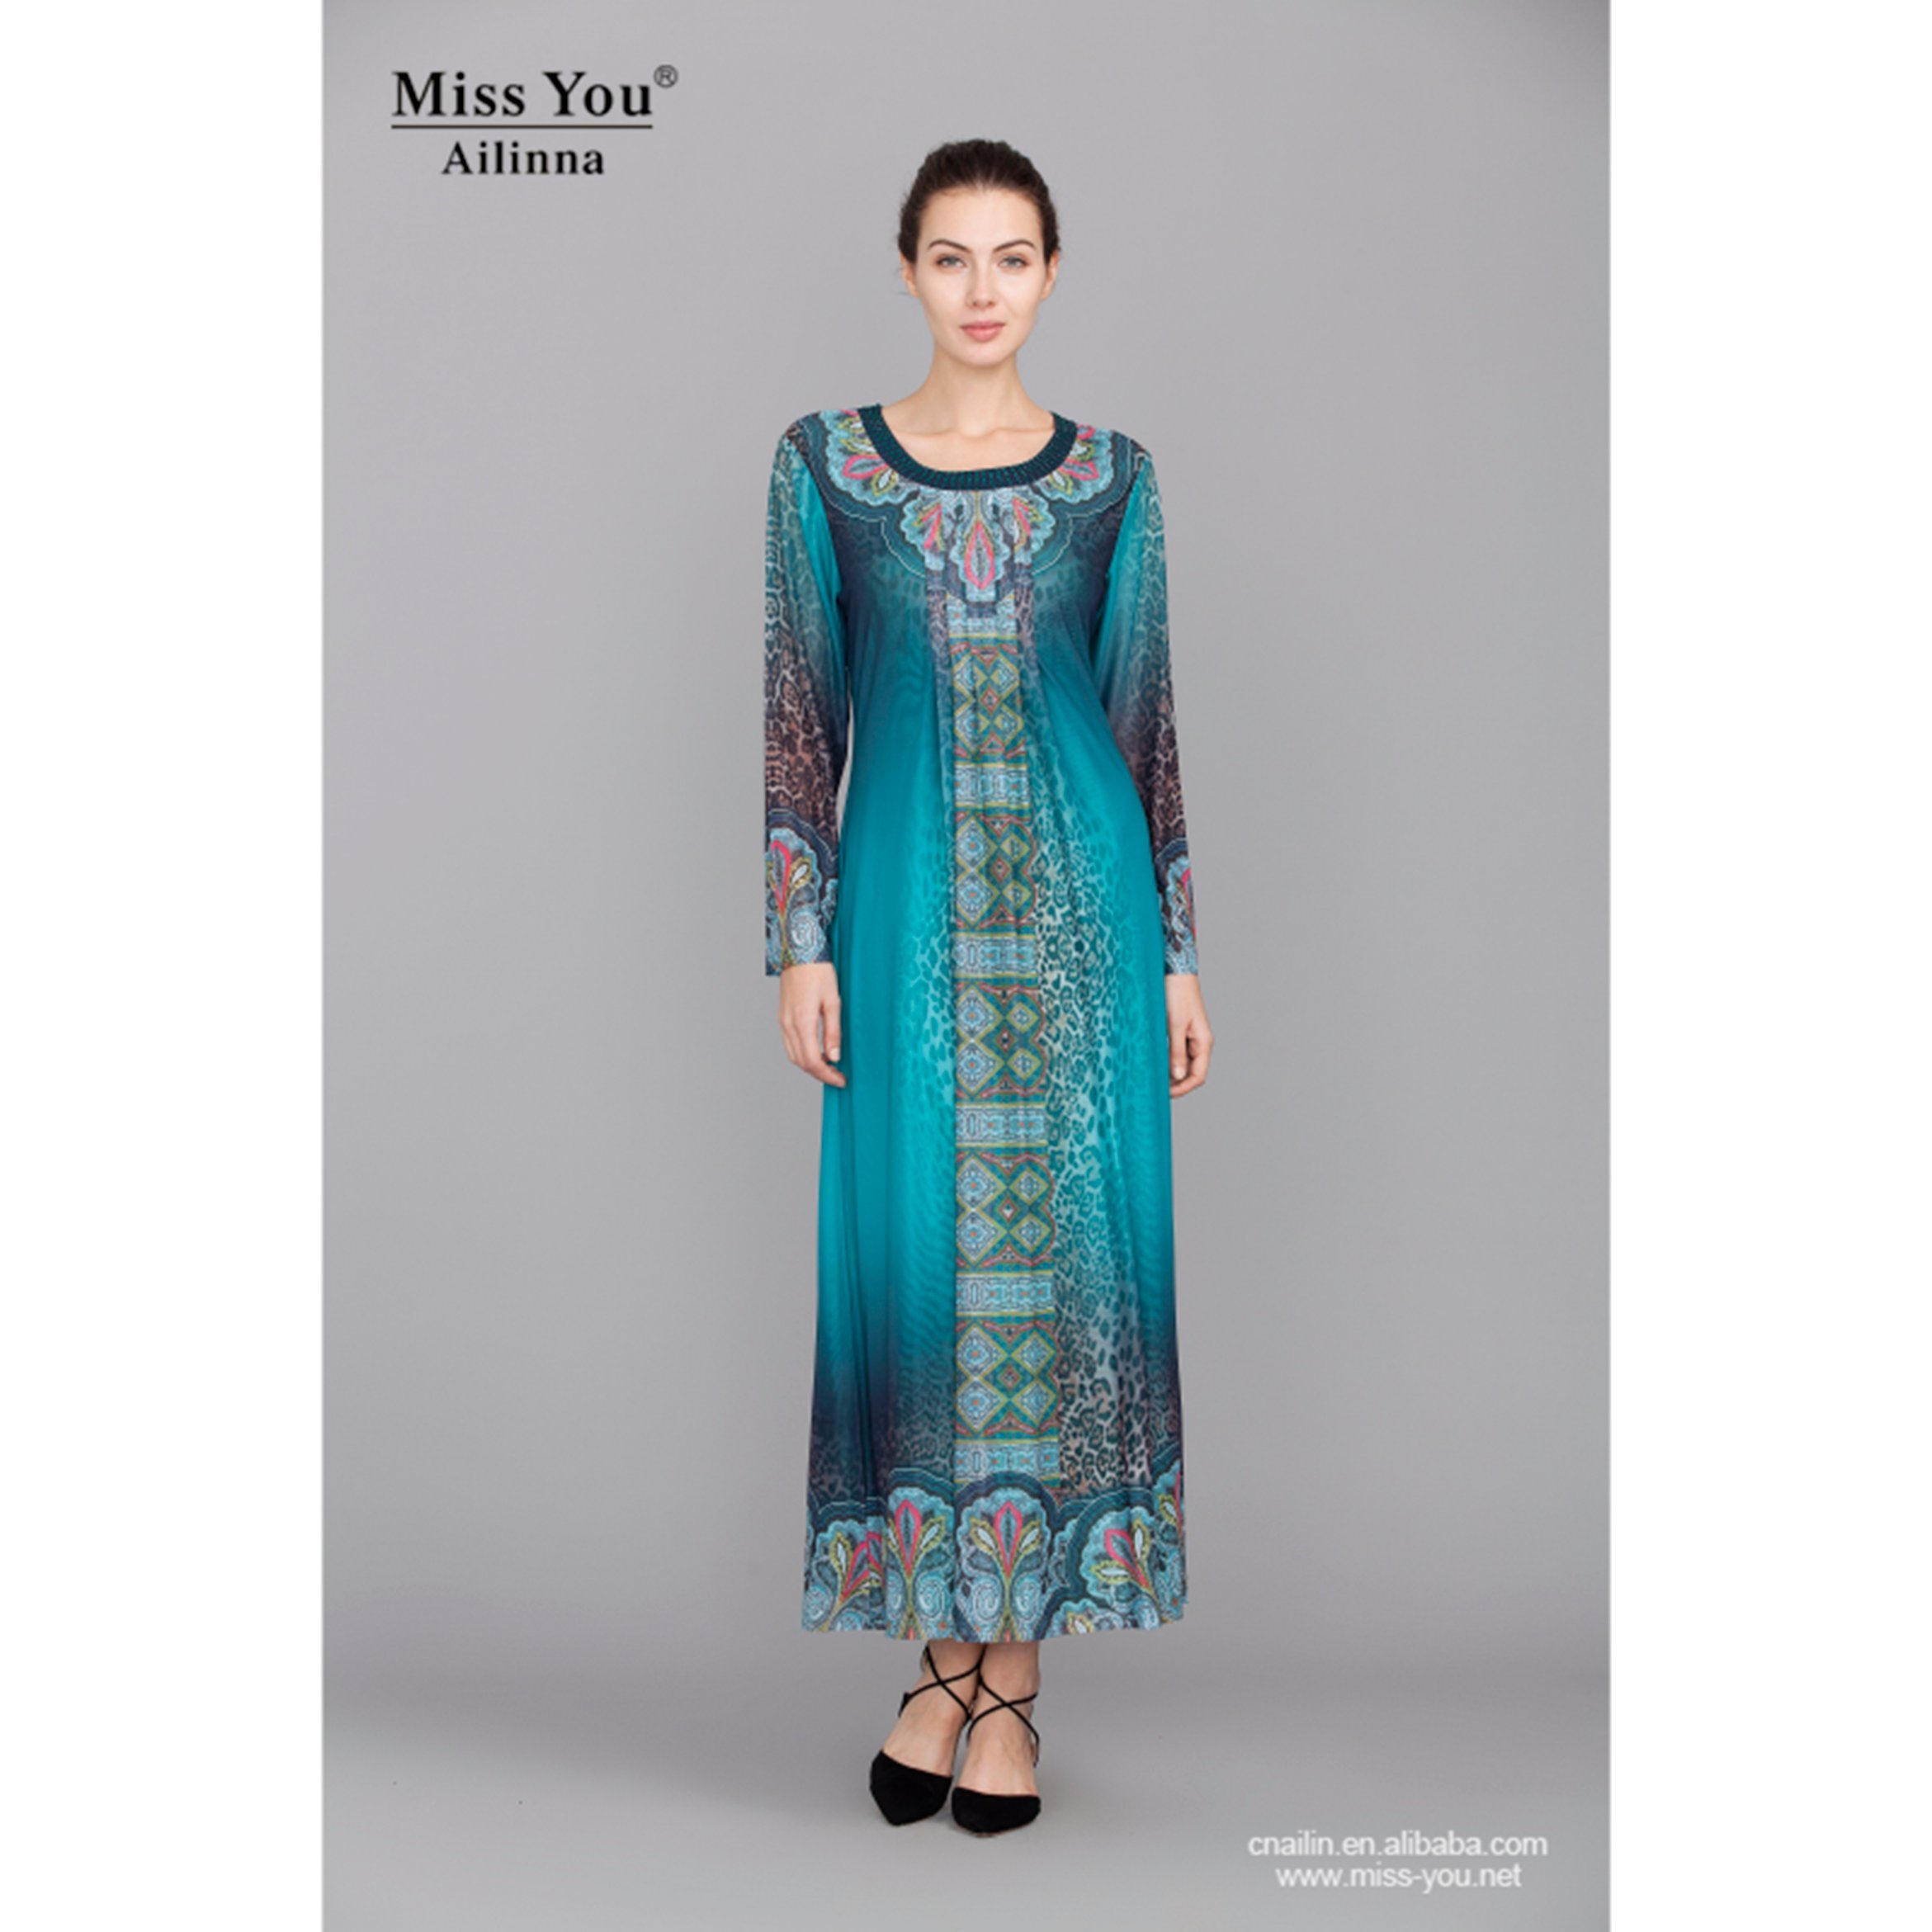 Miss You Ailinna 300631-2 Ladies Fashion Abaya Soft Indian Muslim Dress Distributor